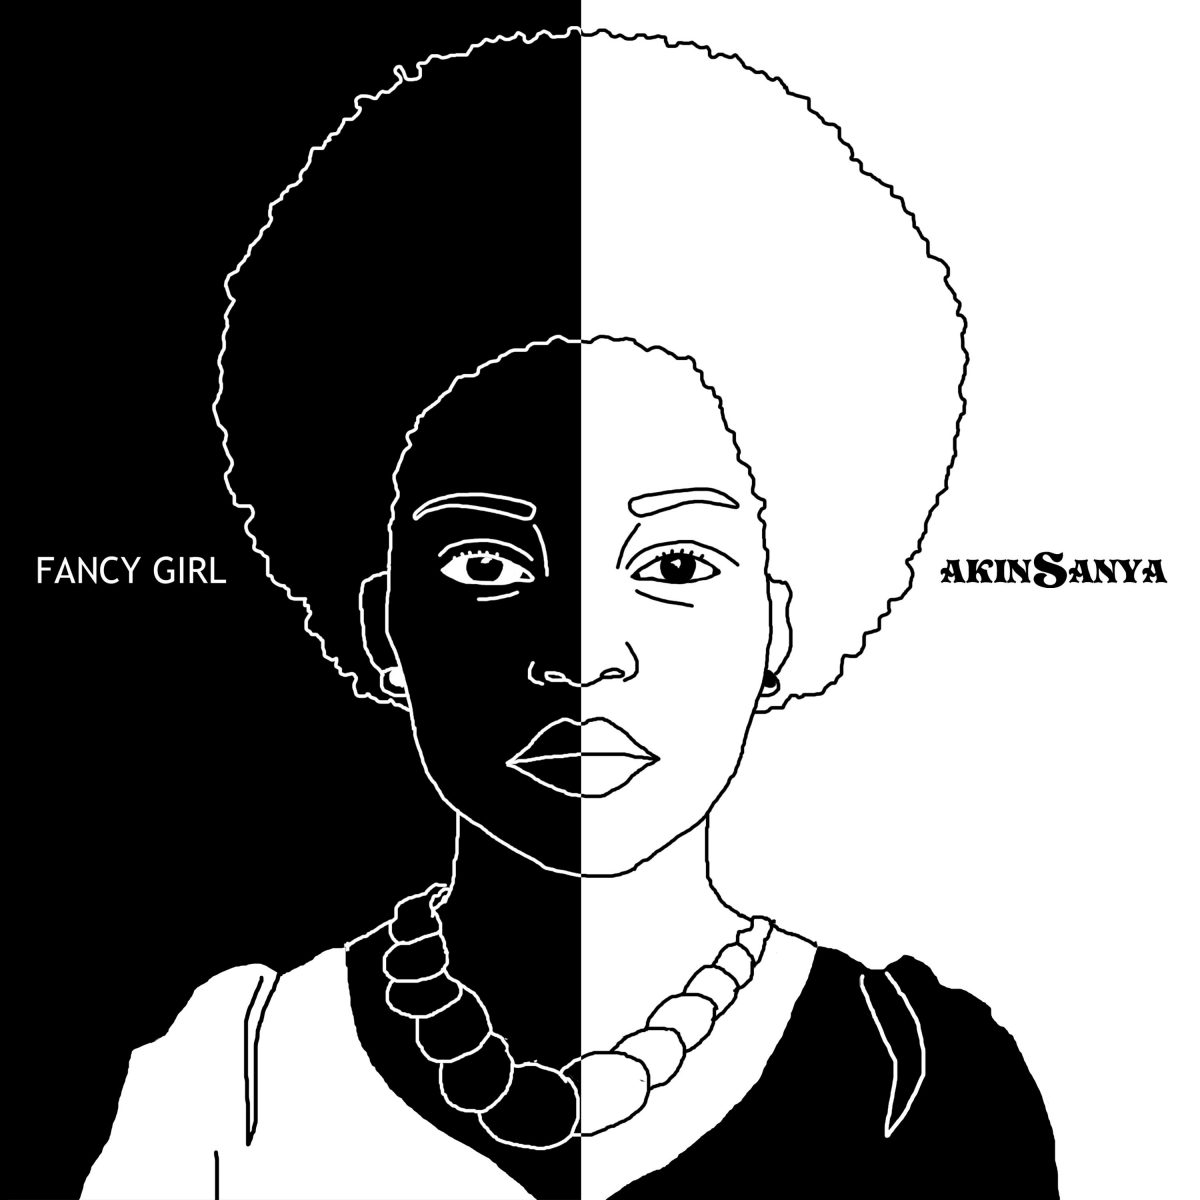 Akinsanya - Fancy Girl